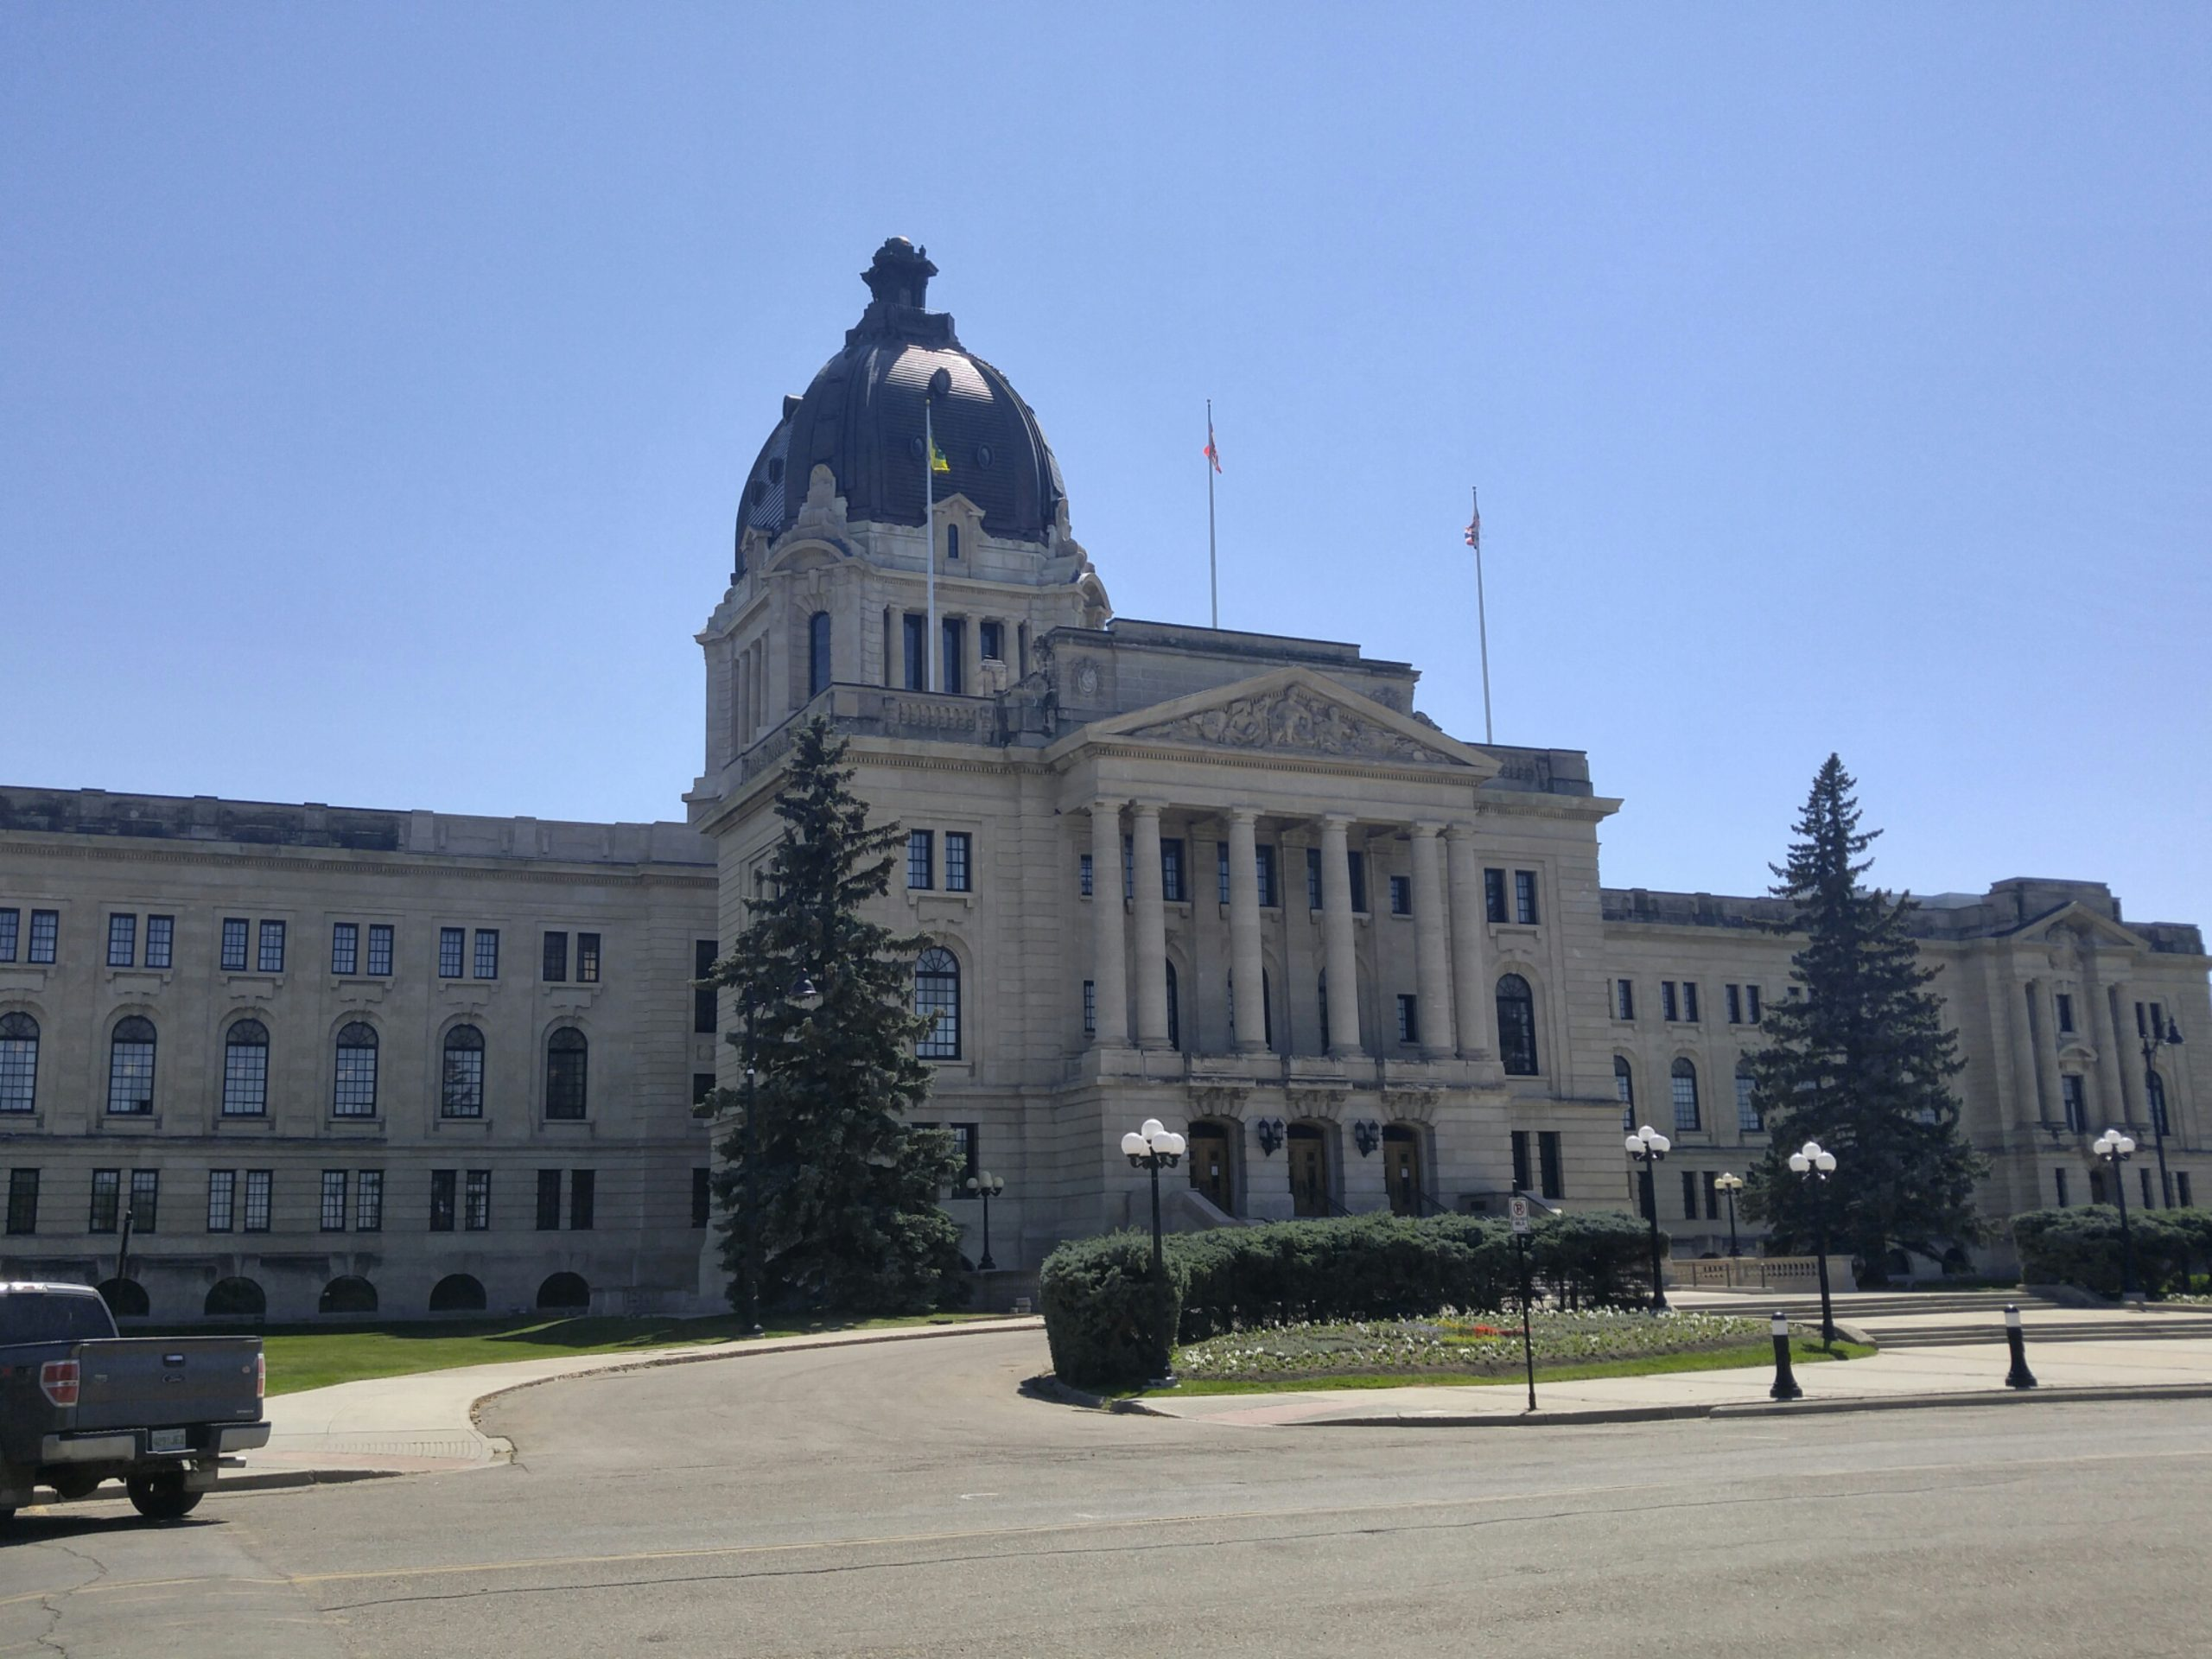 NDP and SaskParty have differing views on job creation and growth